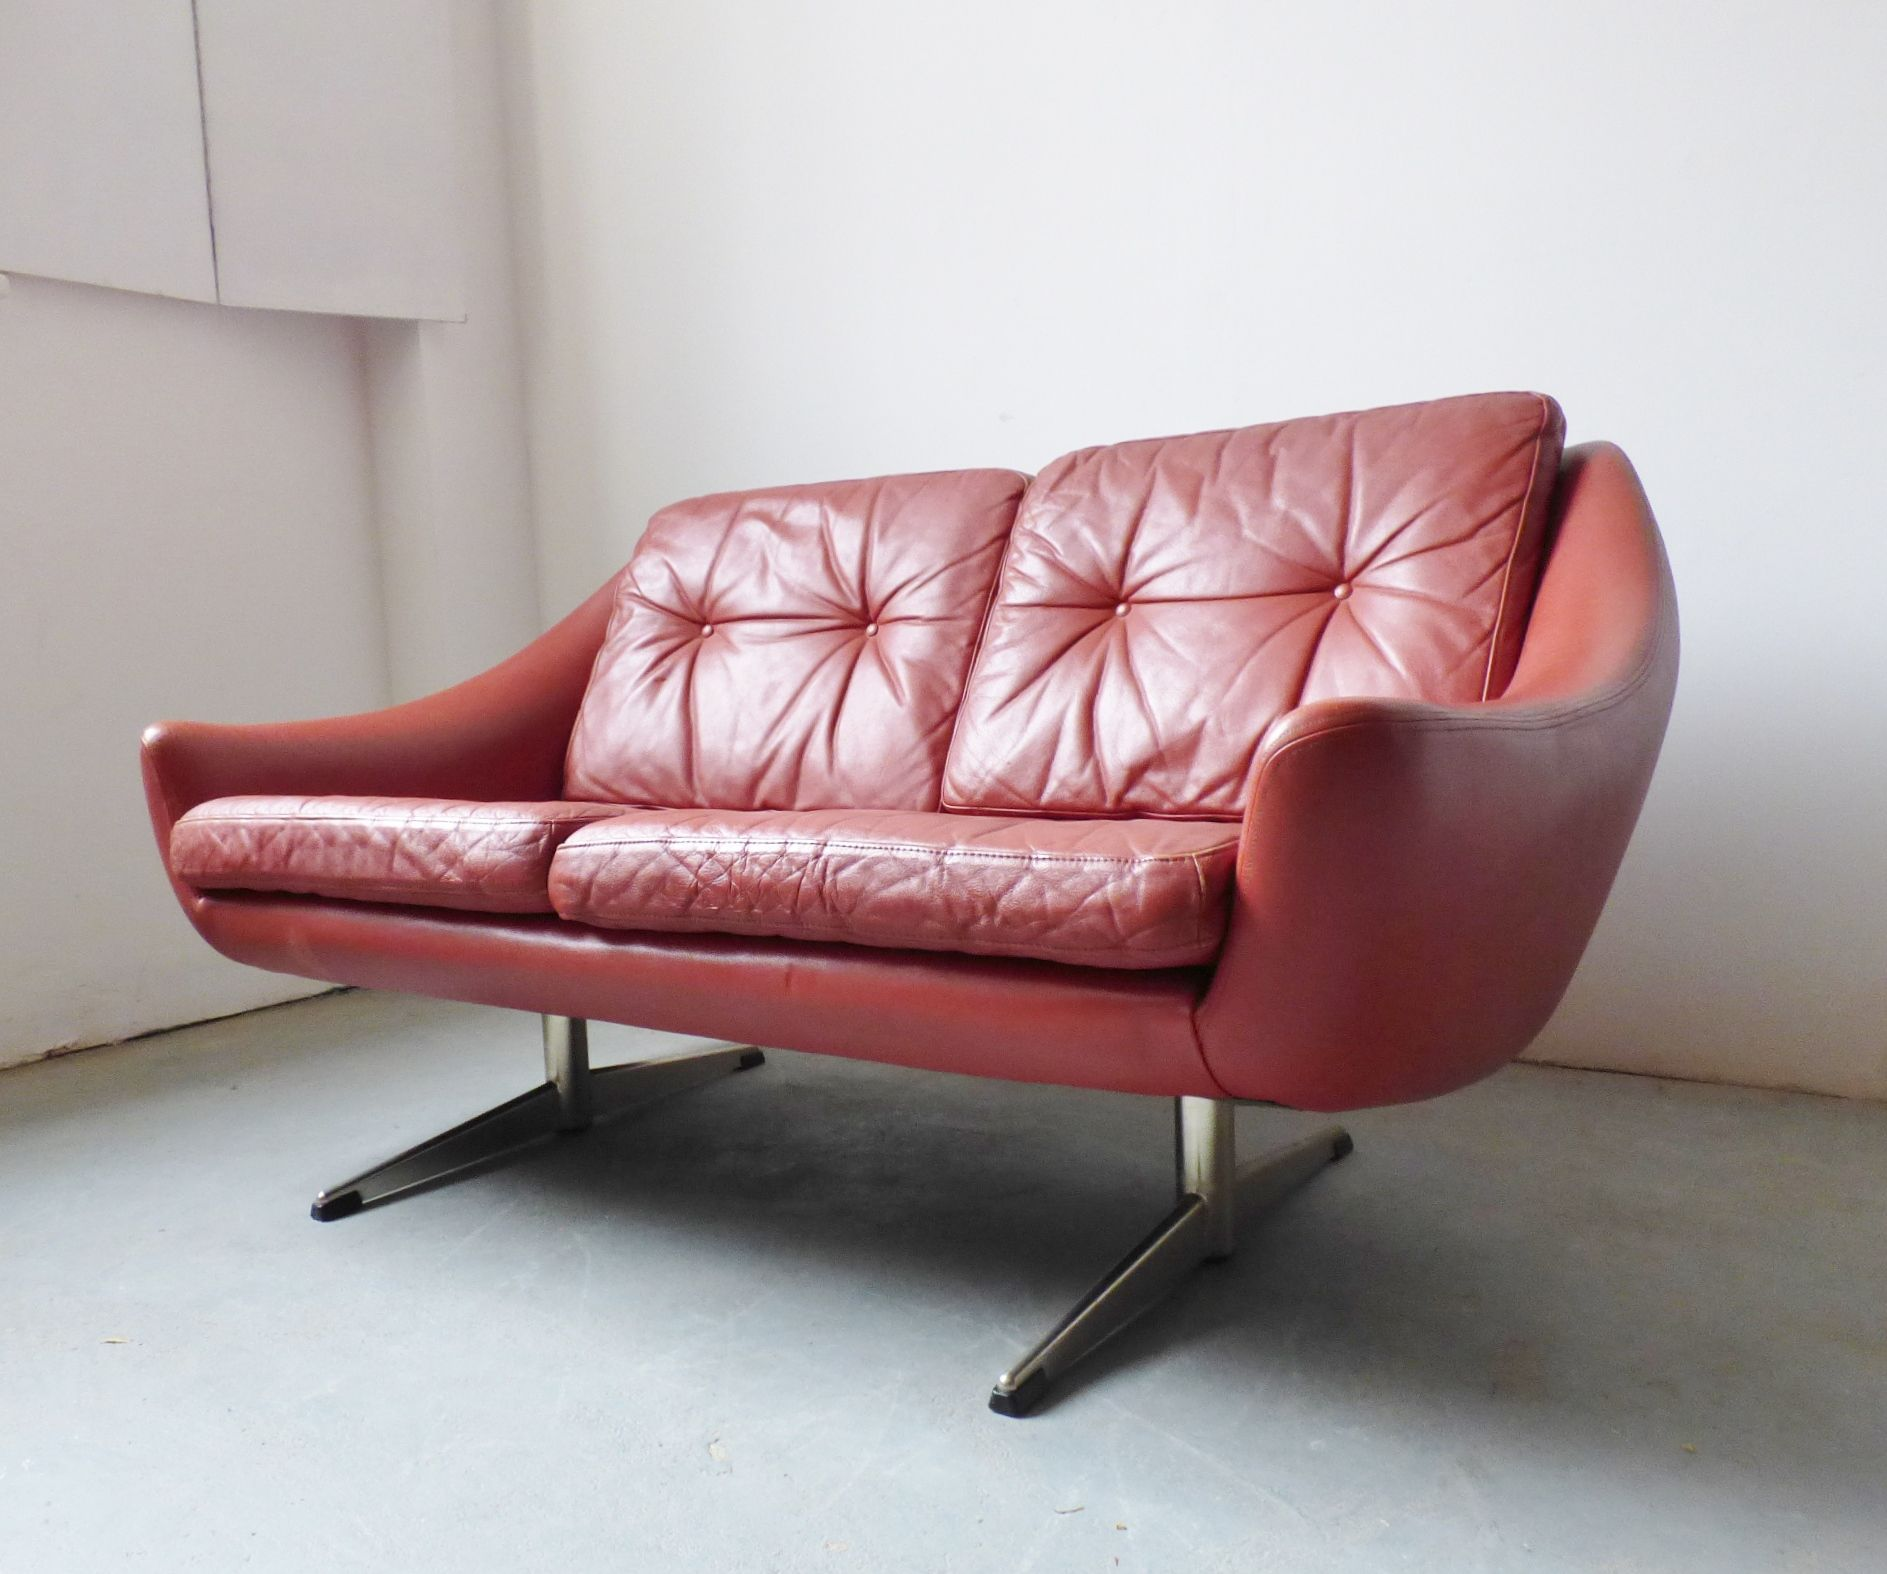 1960s Danish Red Leather 2 Seater Sofa By Eran